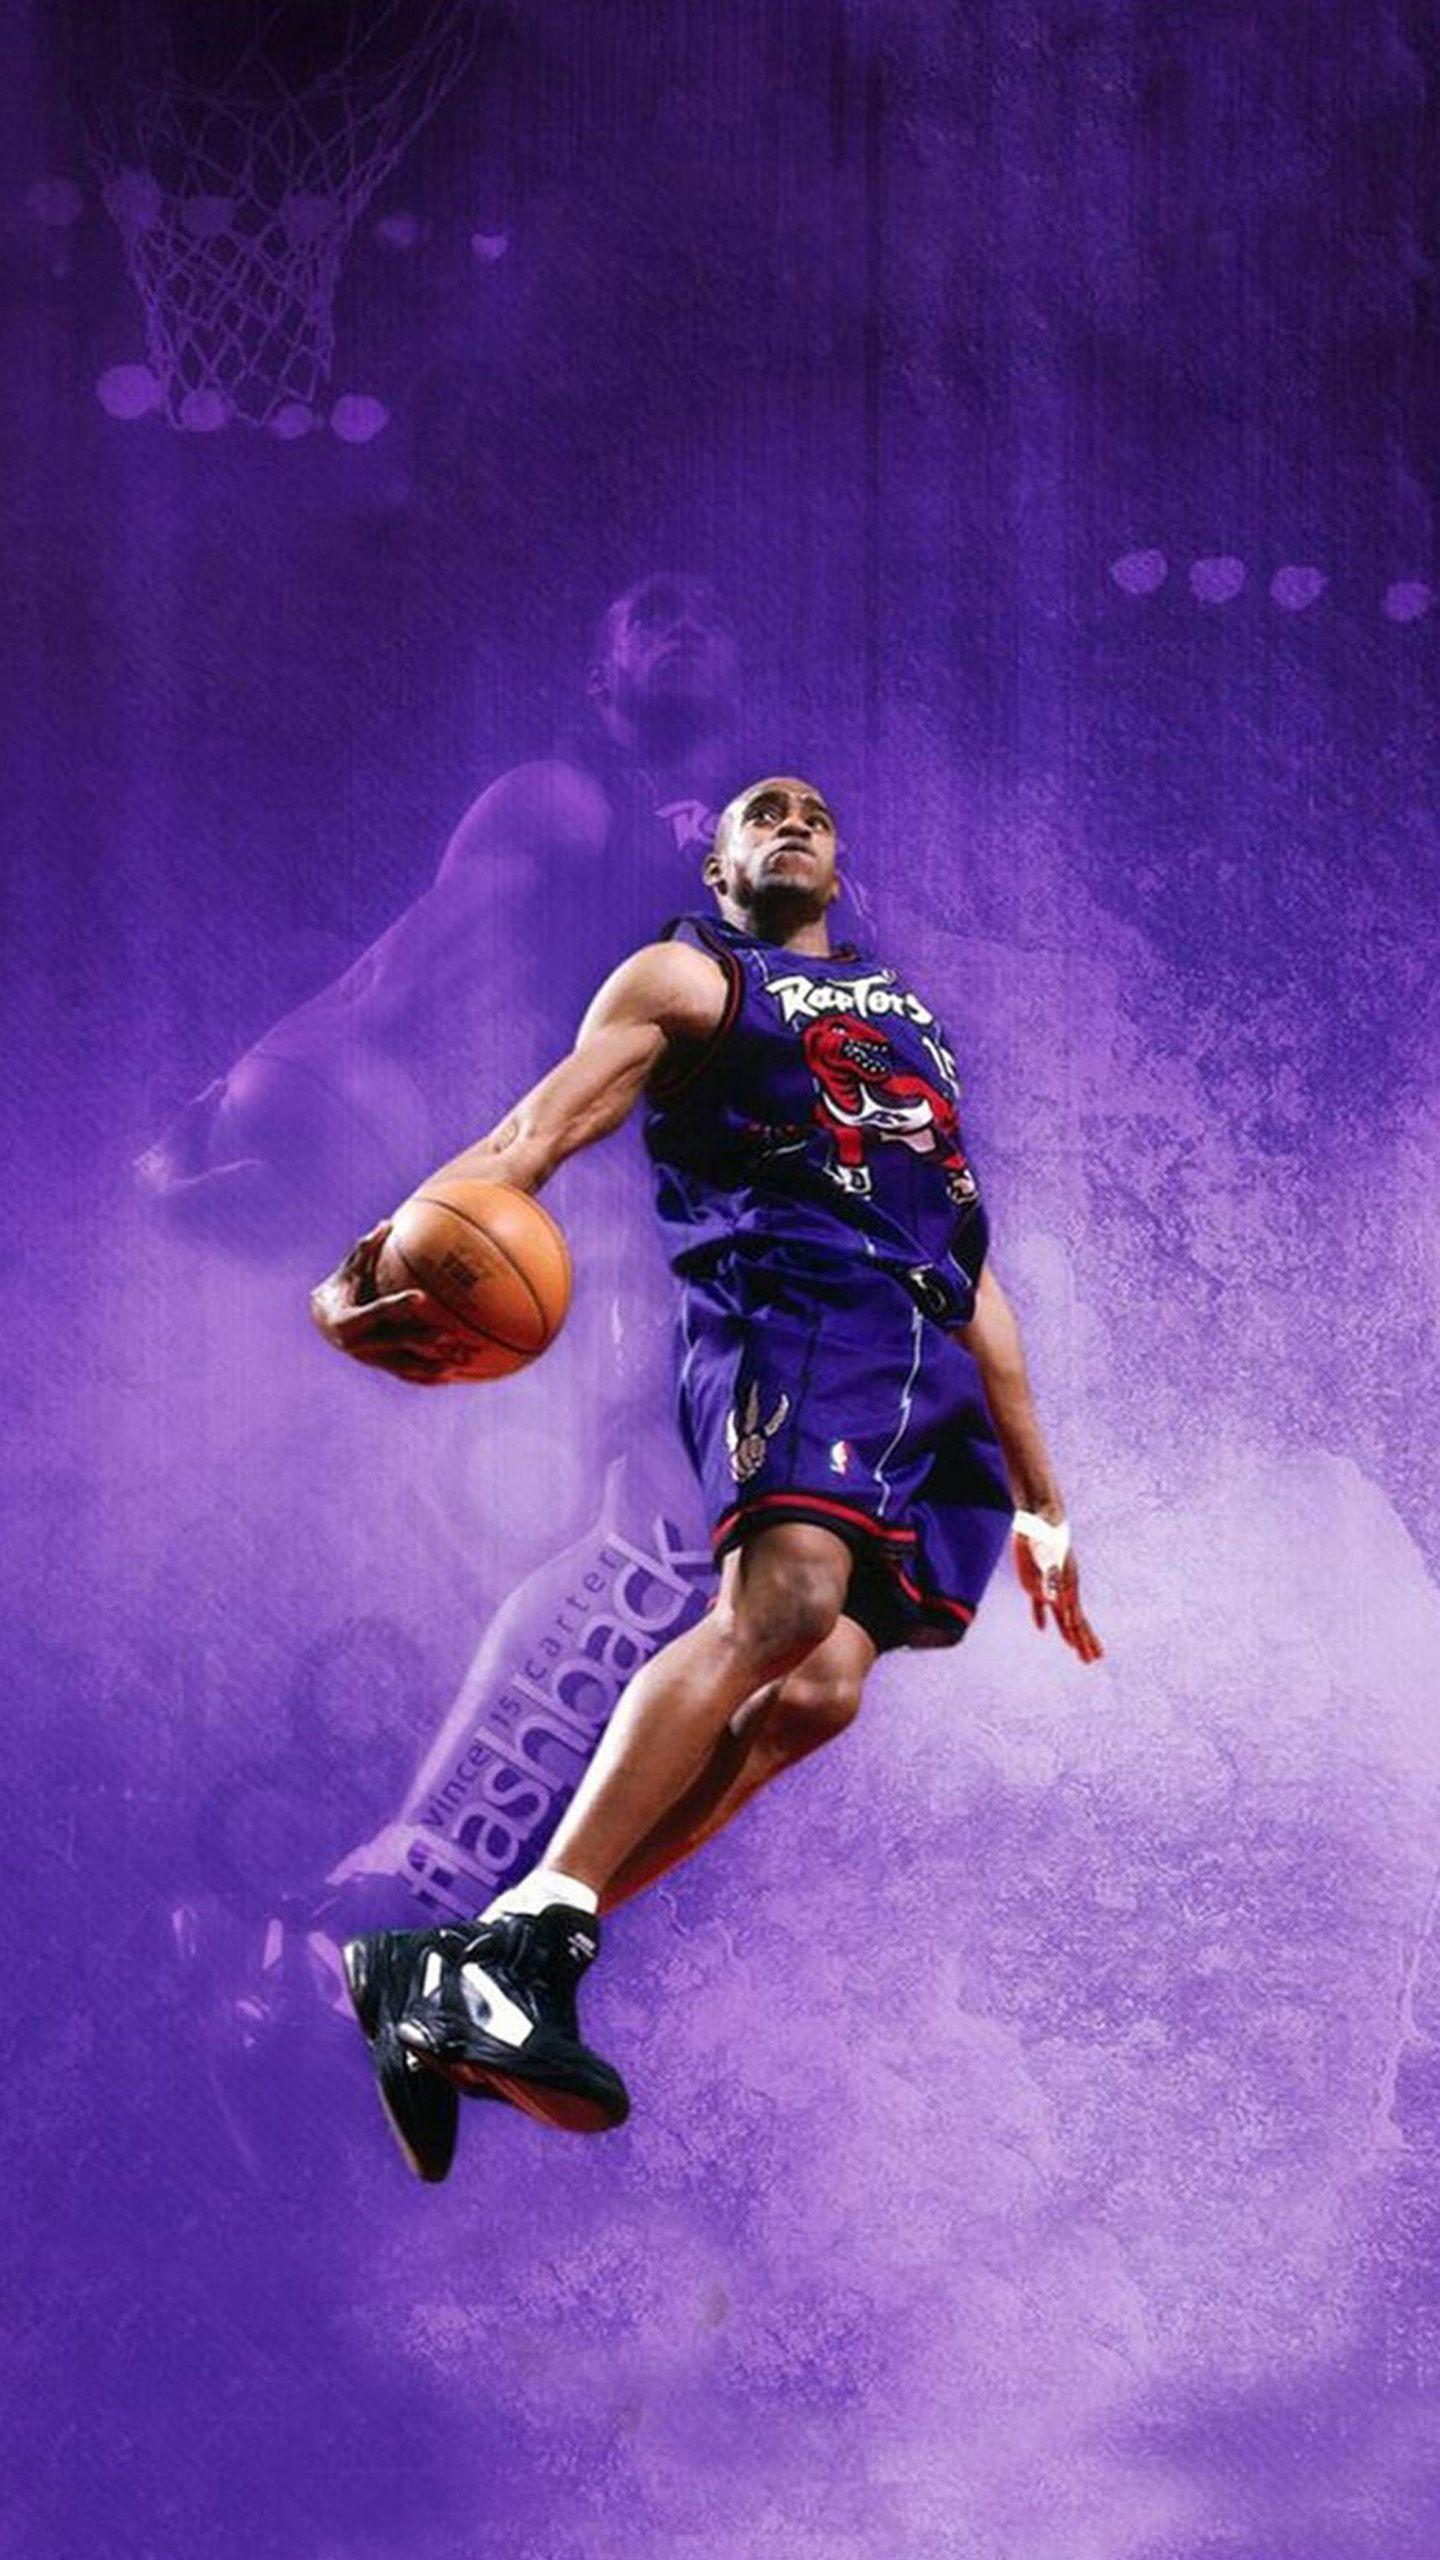 Vince Carter Iphone Lockscreen Kolpaper Awesome Free Hd Wallpapers